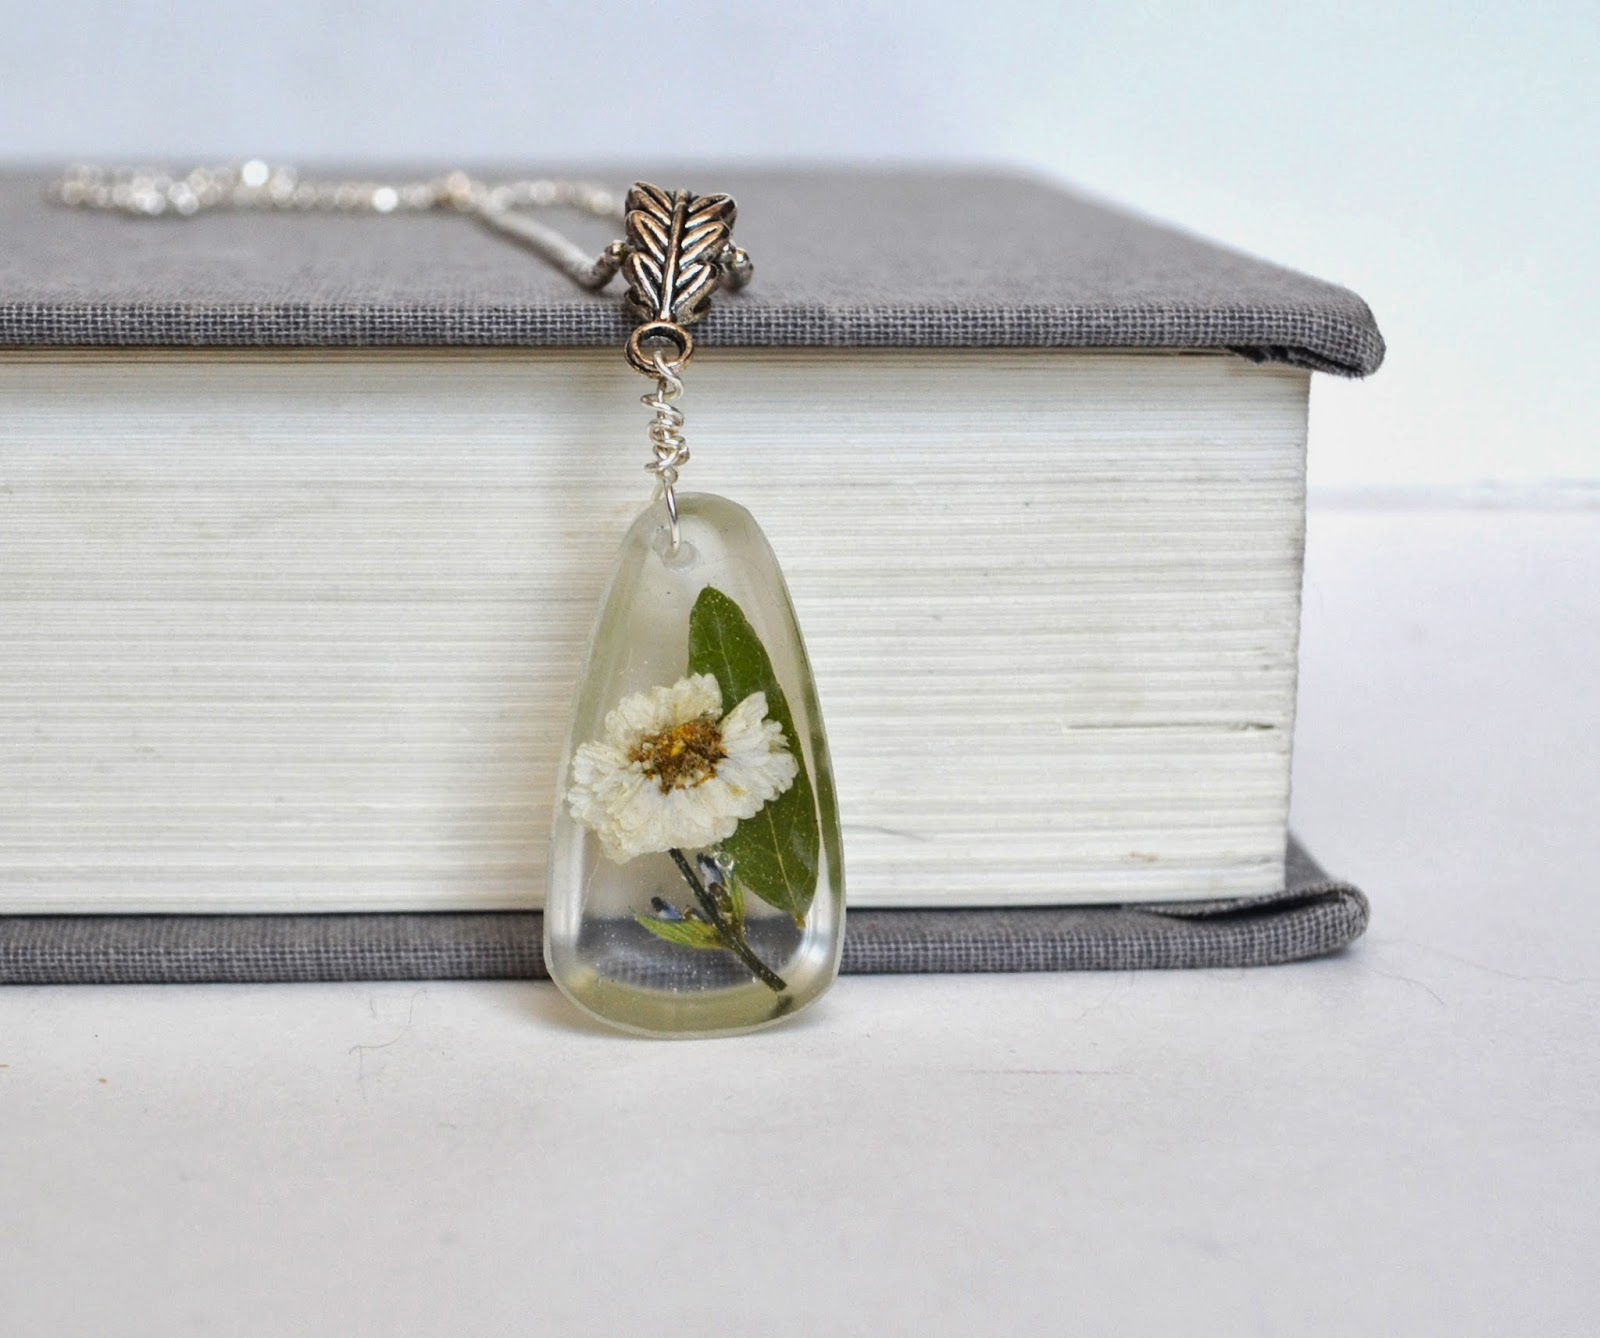 https://www.etsy.com/listing/96865870/real-flower-necklace-pressed-flower?ref=shop_home_active_17